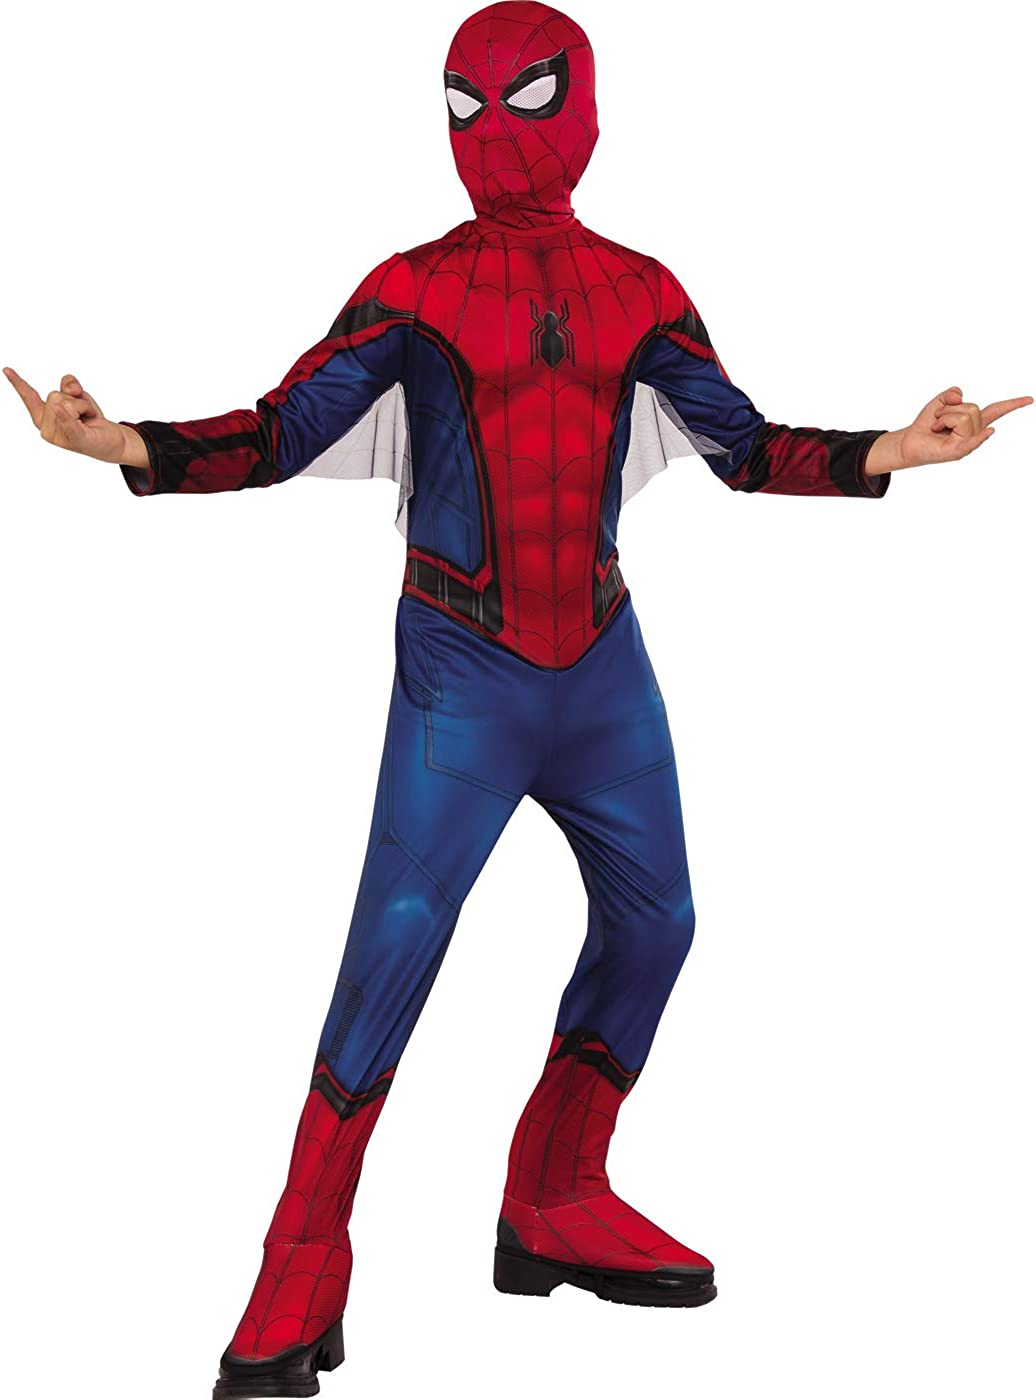 Boy's Spider-Man Far From Home Blue And Red Suit Costume Medium 8-10